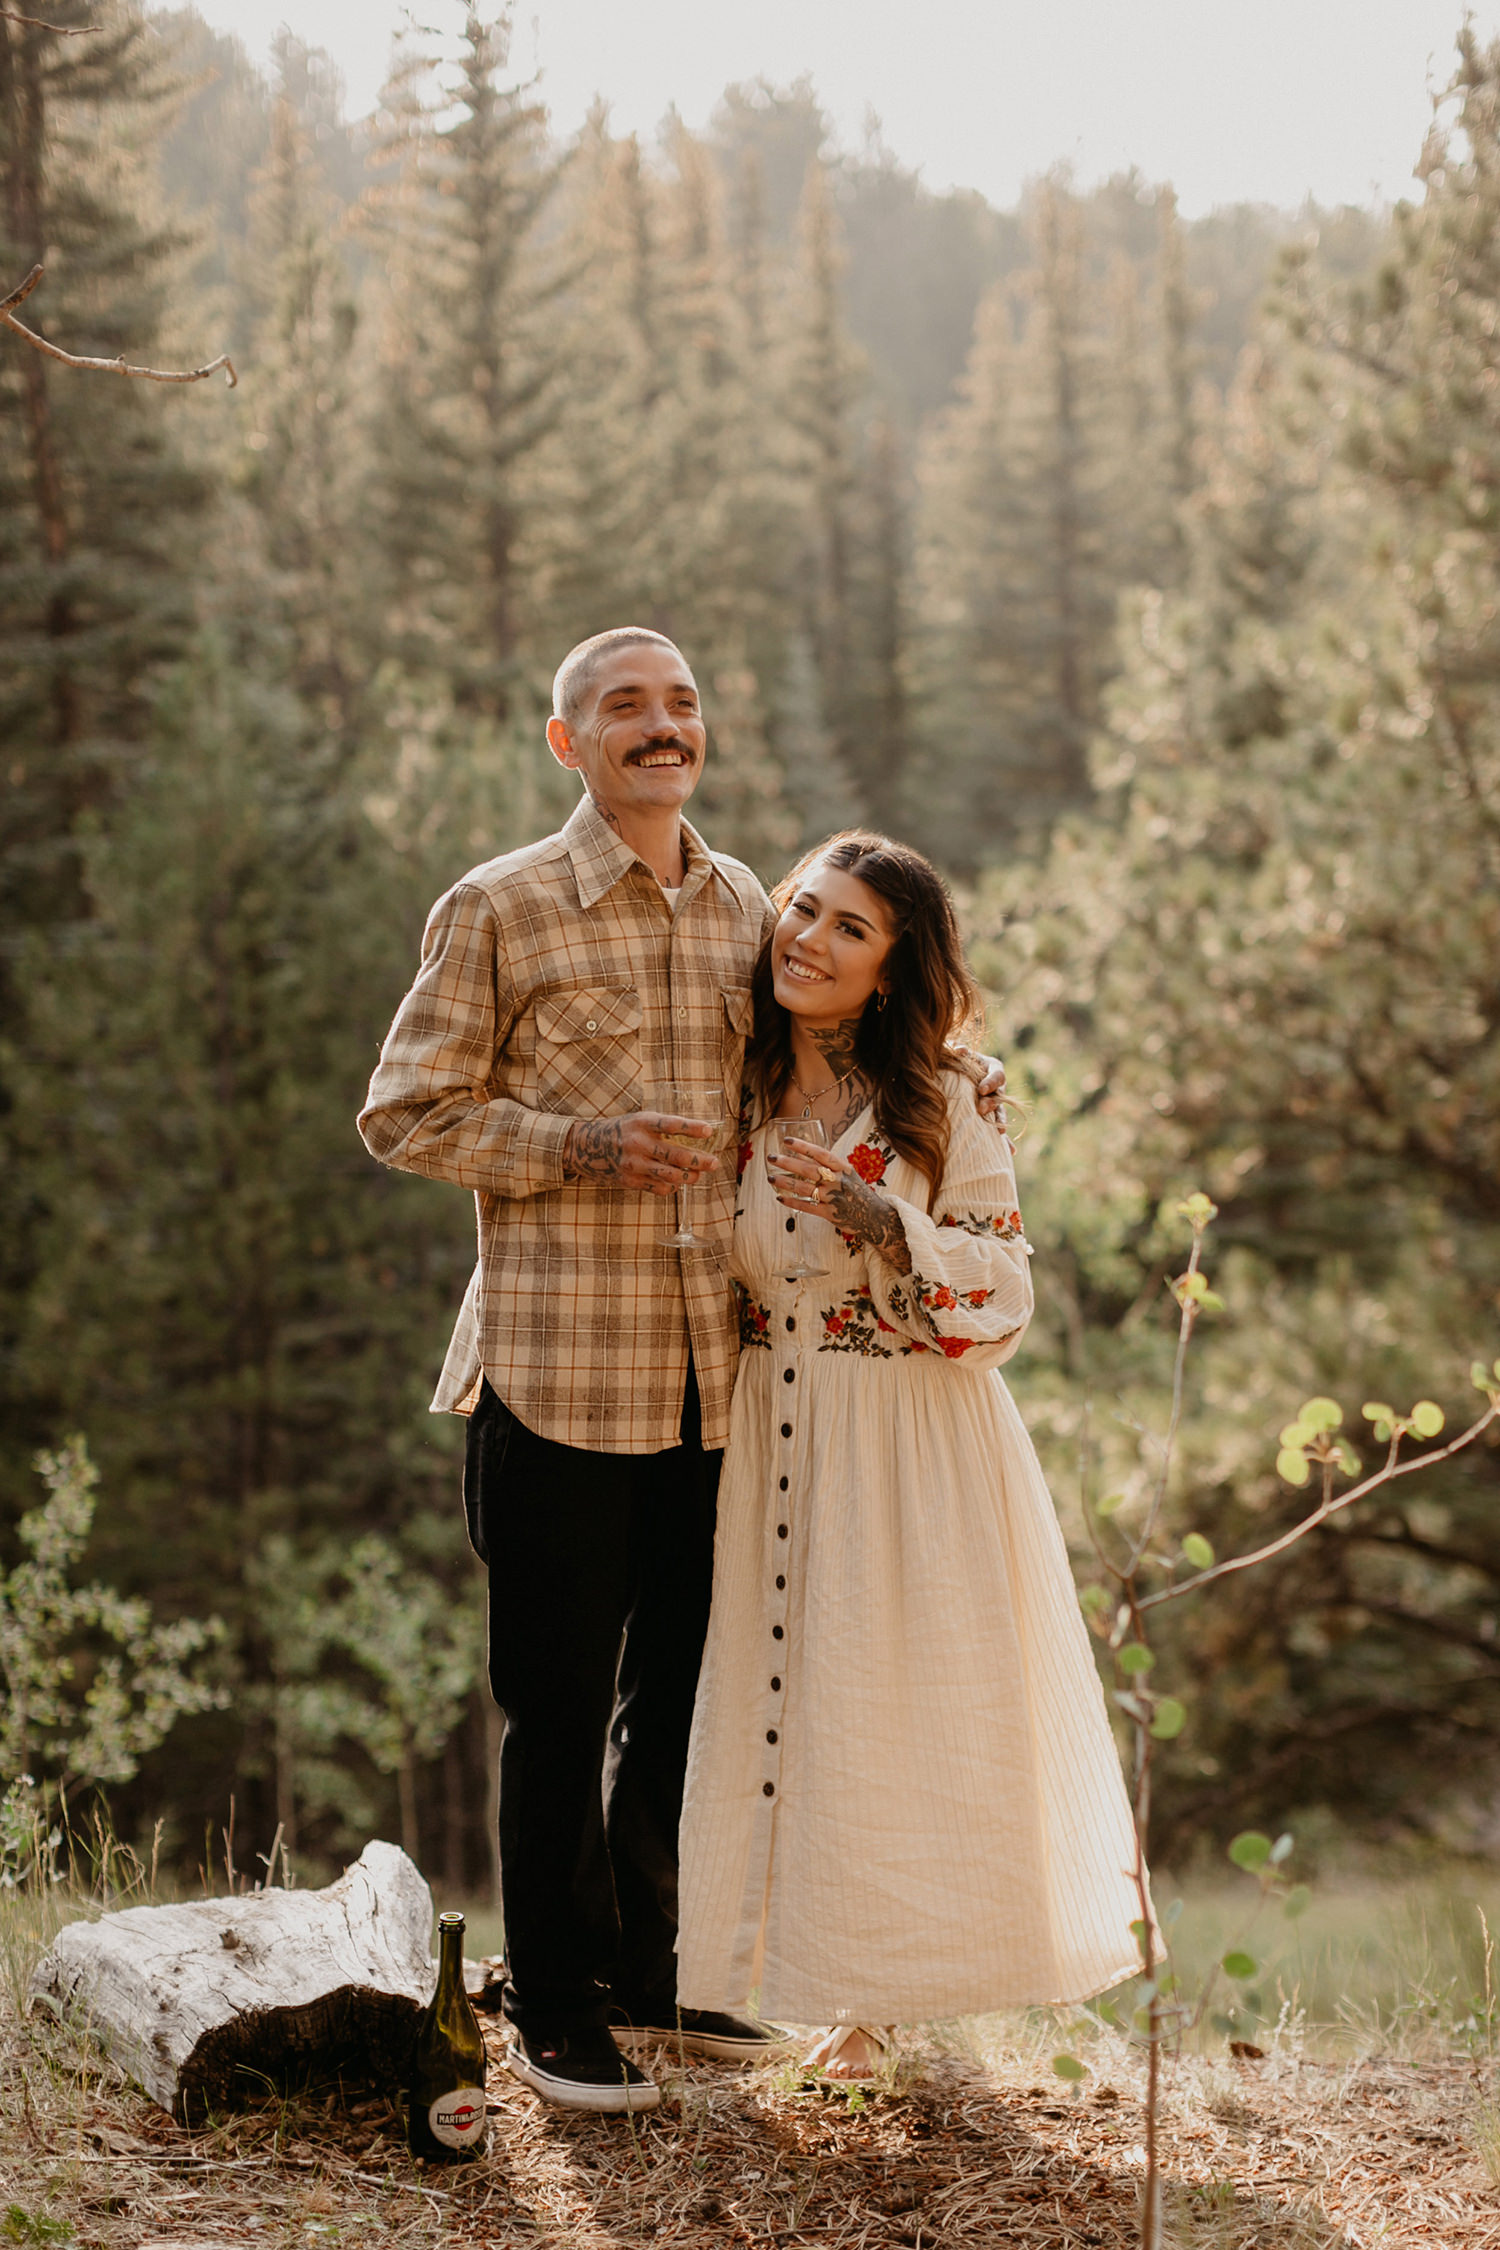 Bailey Colorado Denver Wedding Engagement Photographer Liz Osban Cheyenne Wyoming Mountain Elopement Boho bohemian vintage film tattoo non traditional tattooed rock and roll 3.jpg